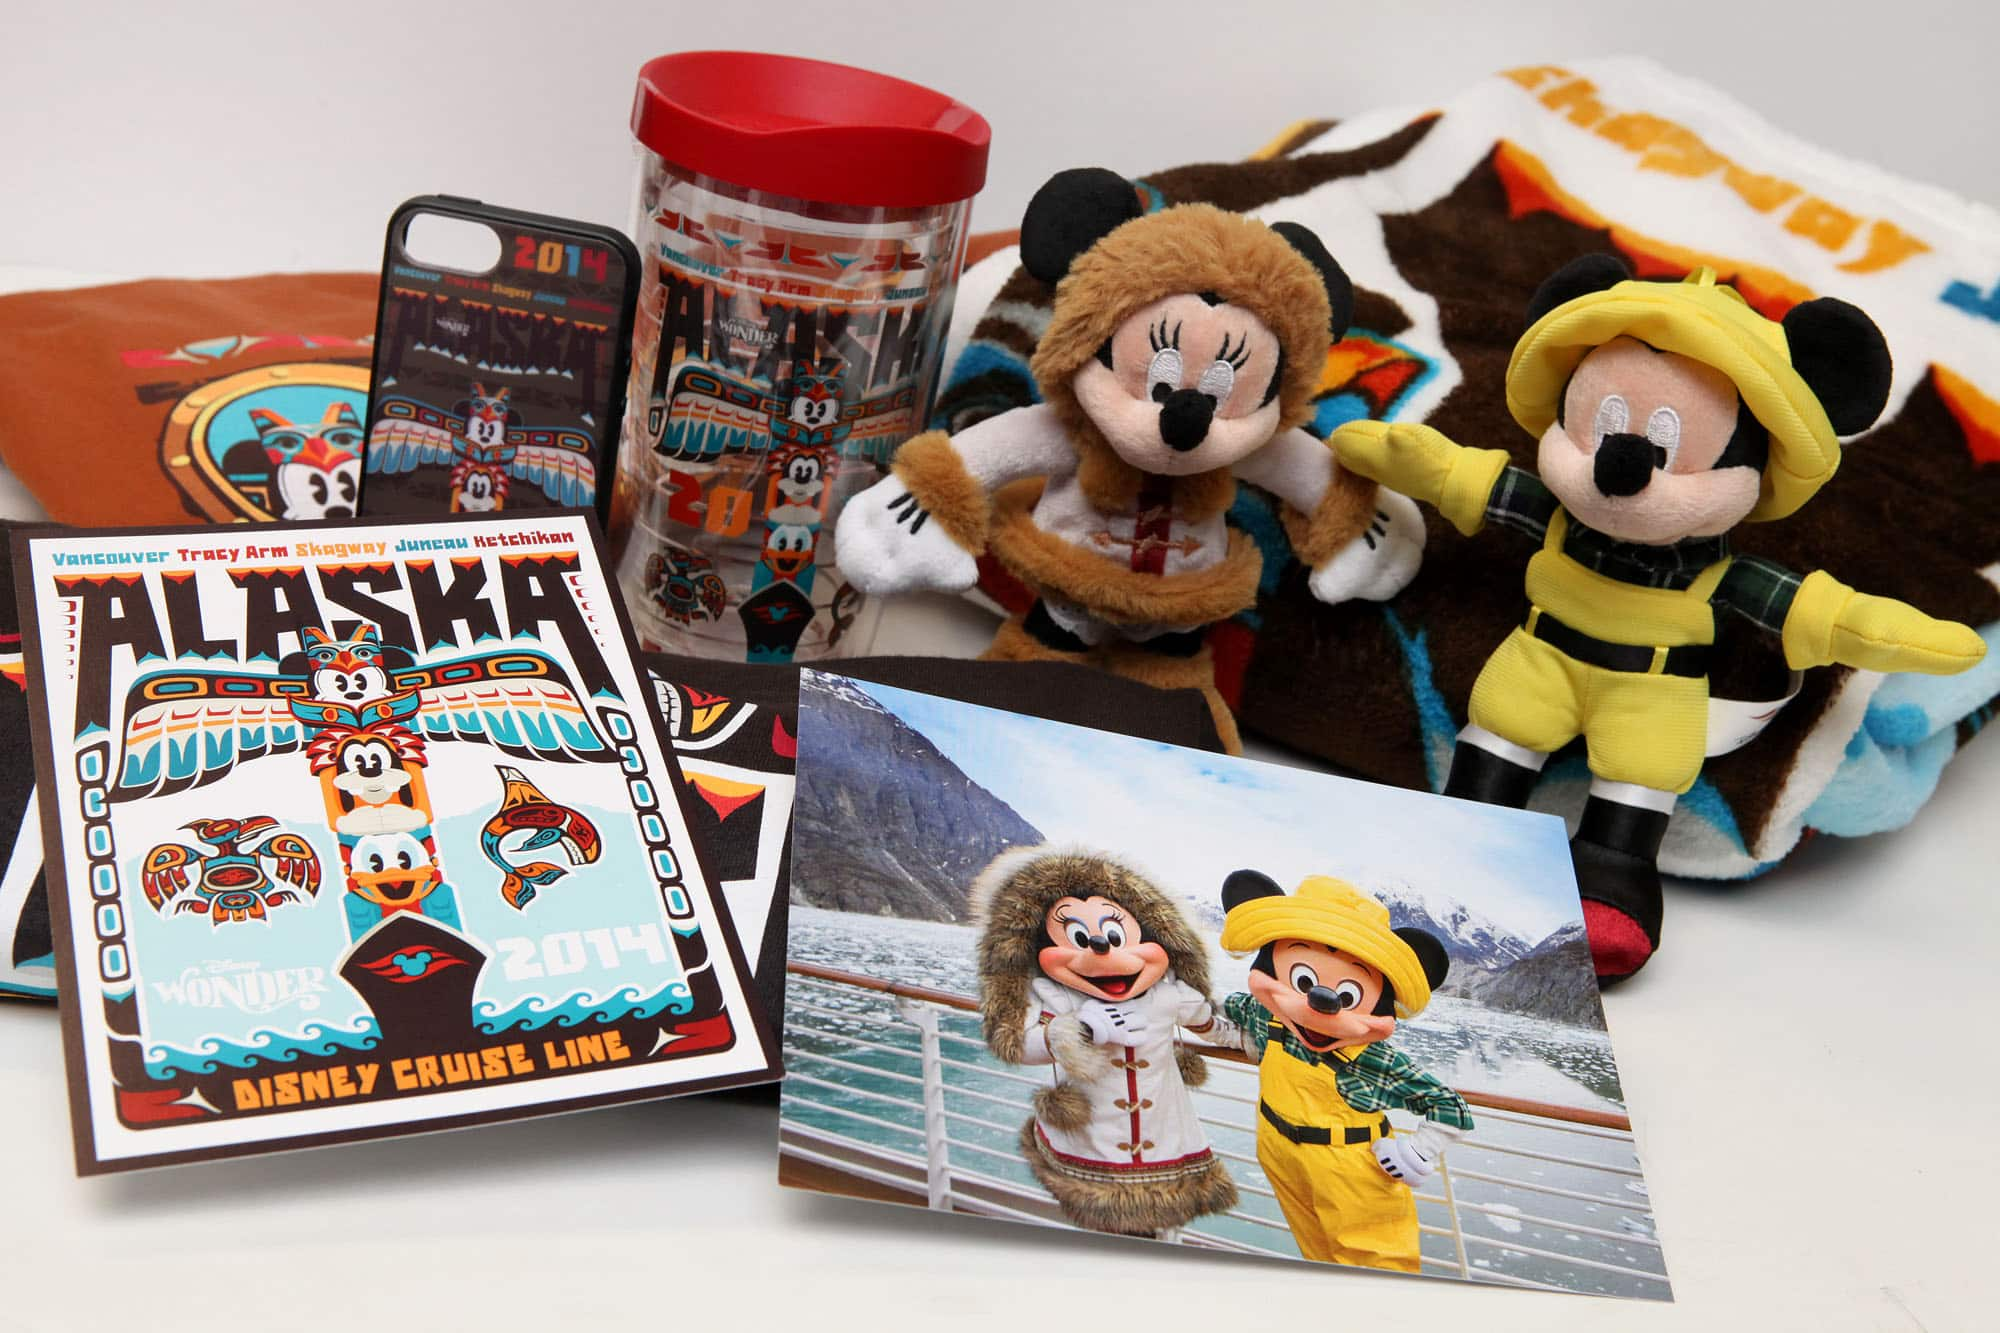 Disney Cruise Line Halloween Merchandise.First Look At New Disney Cruise Line Merchandise For Summer 2014